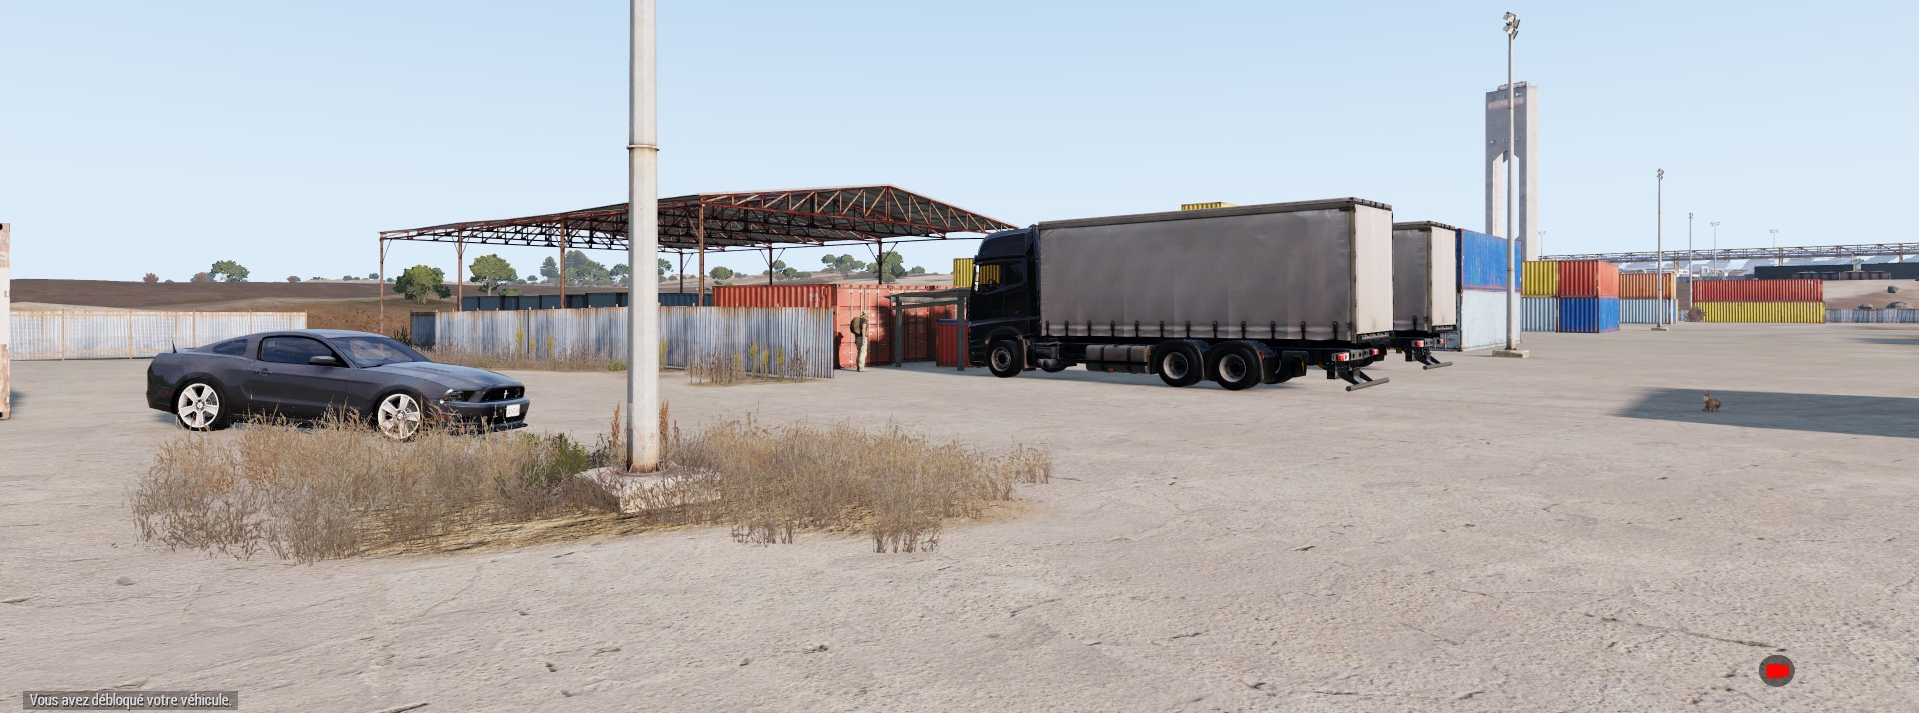 vente camion.png